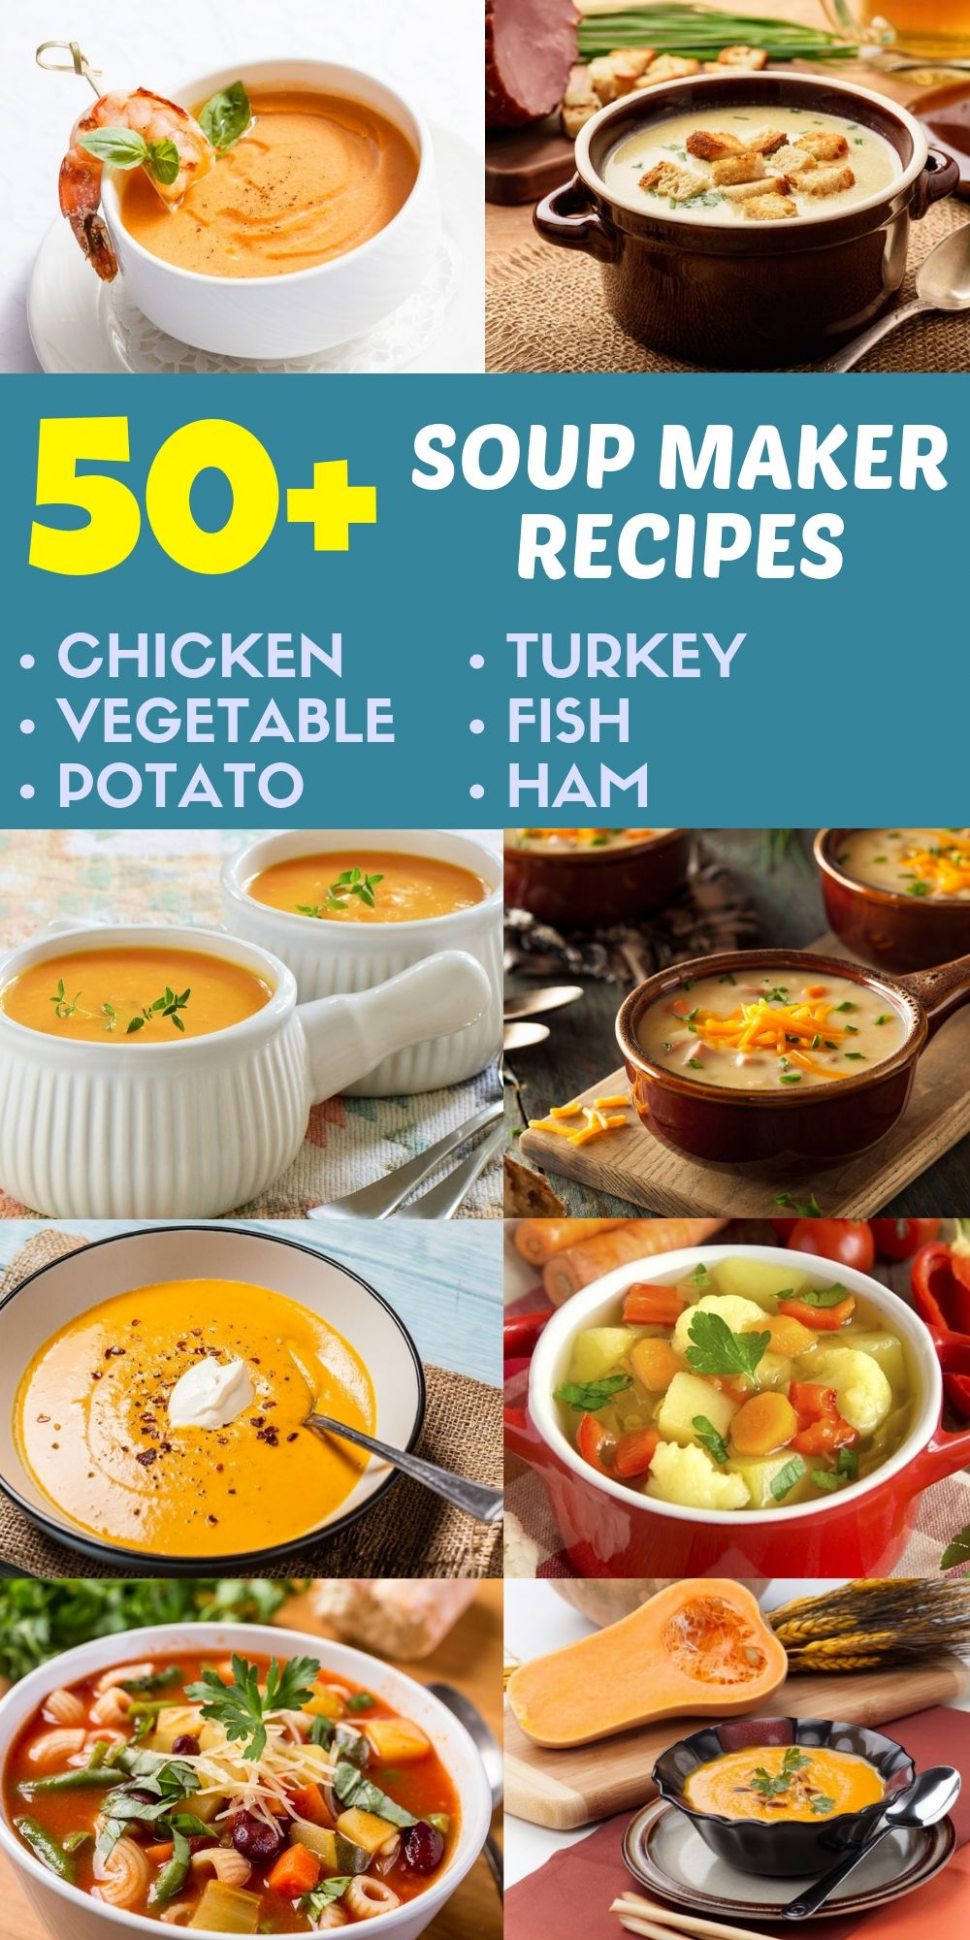 Soup Maker Recipes For Beginners | Tomaten und Suppen